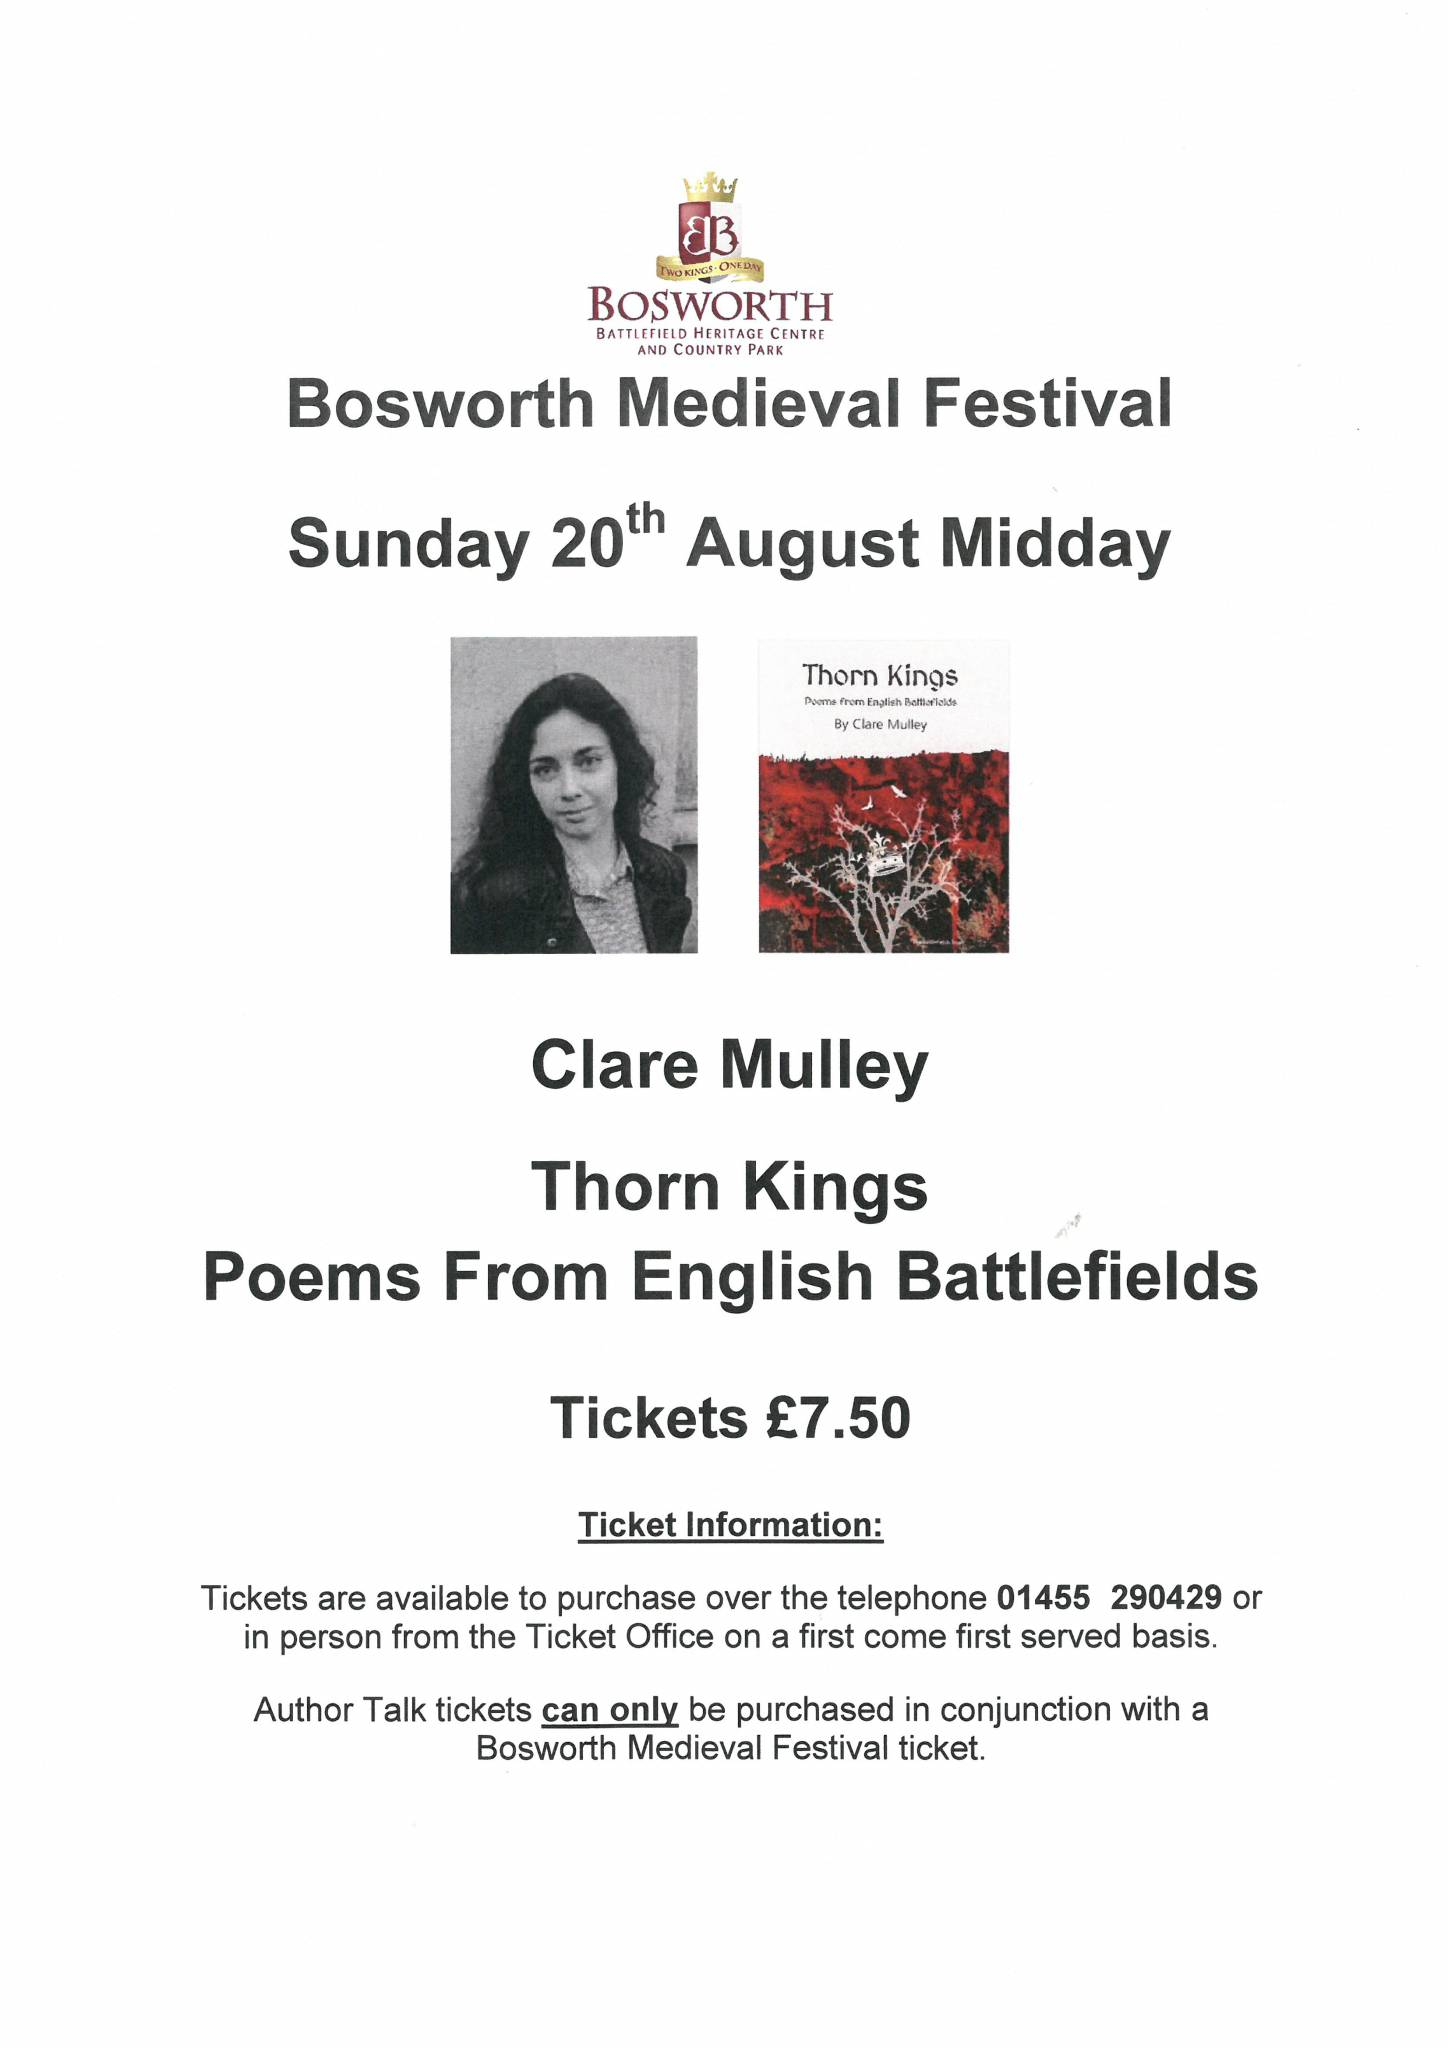 Clare Mulley - Thorn Kings: Poems from English Battlefields